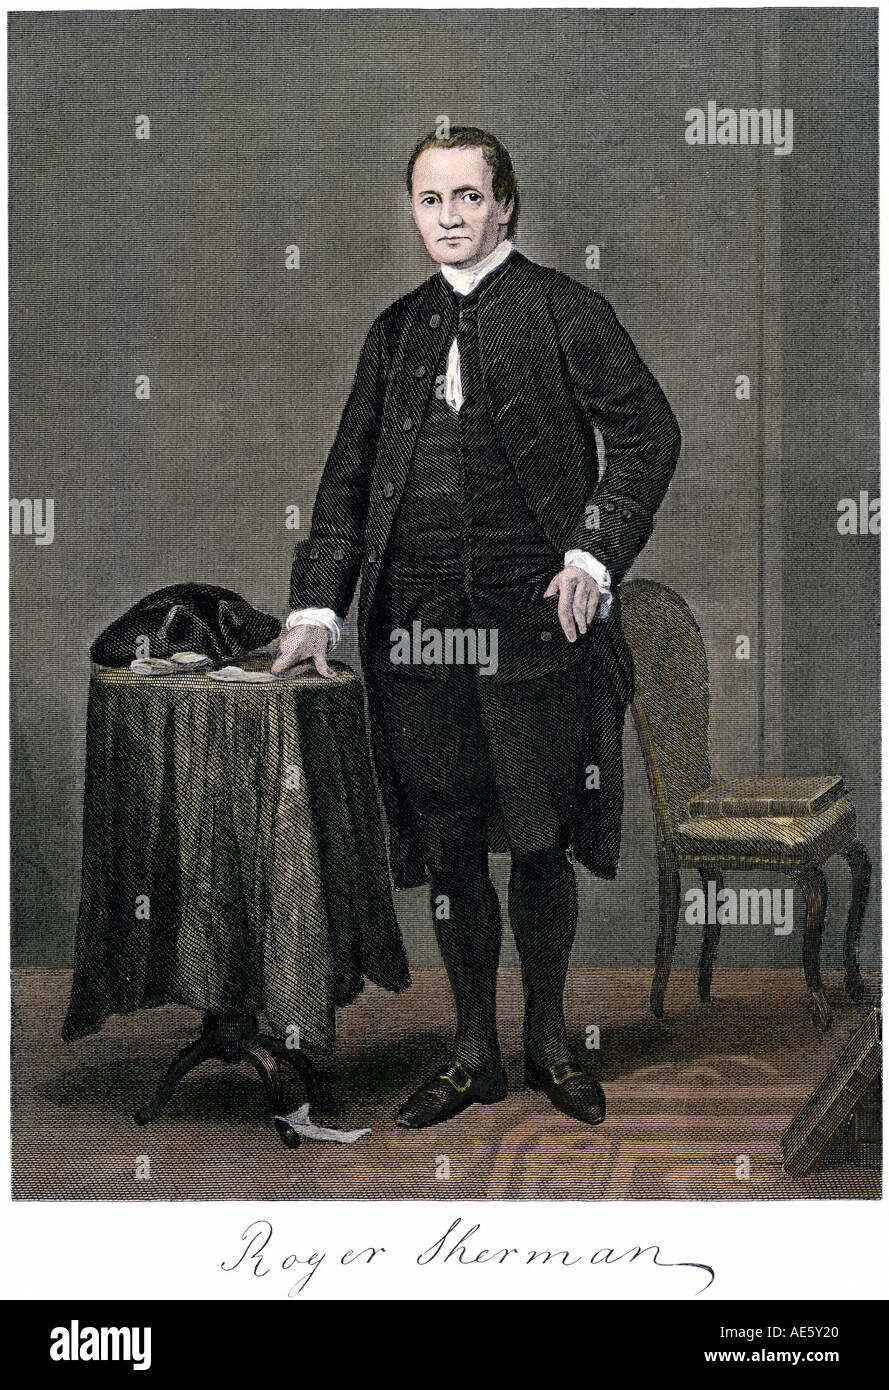 Roger Sherman full portrait with his signature. Hand-colored steel engraving - Stock Image